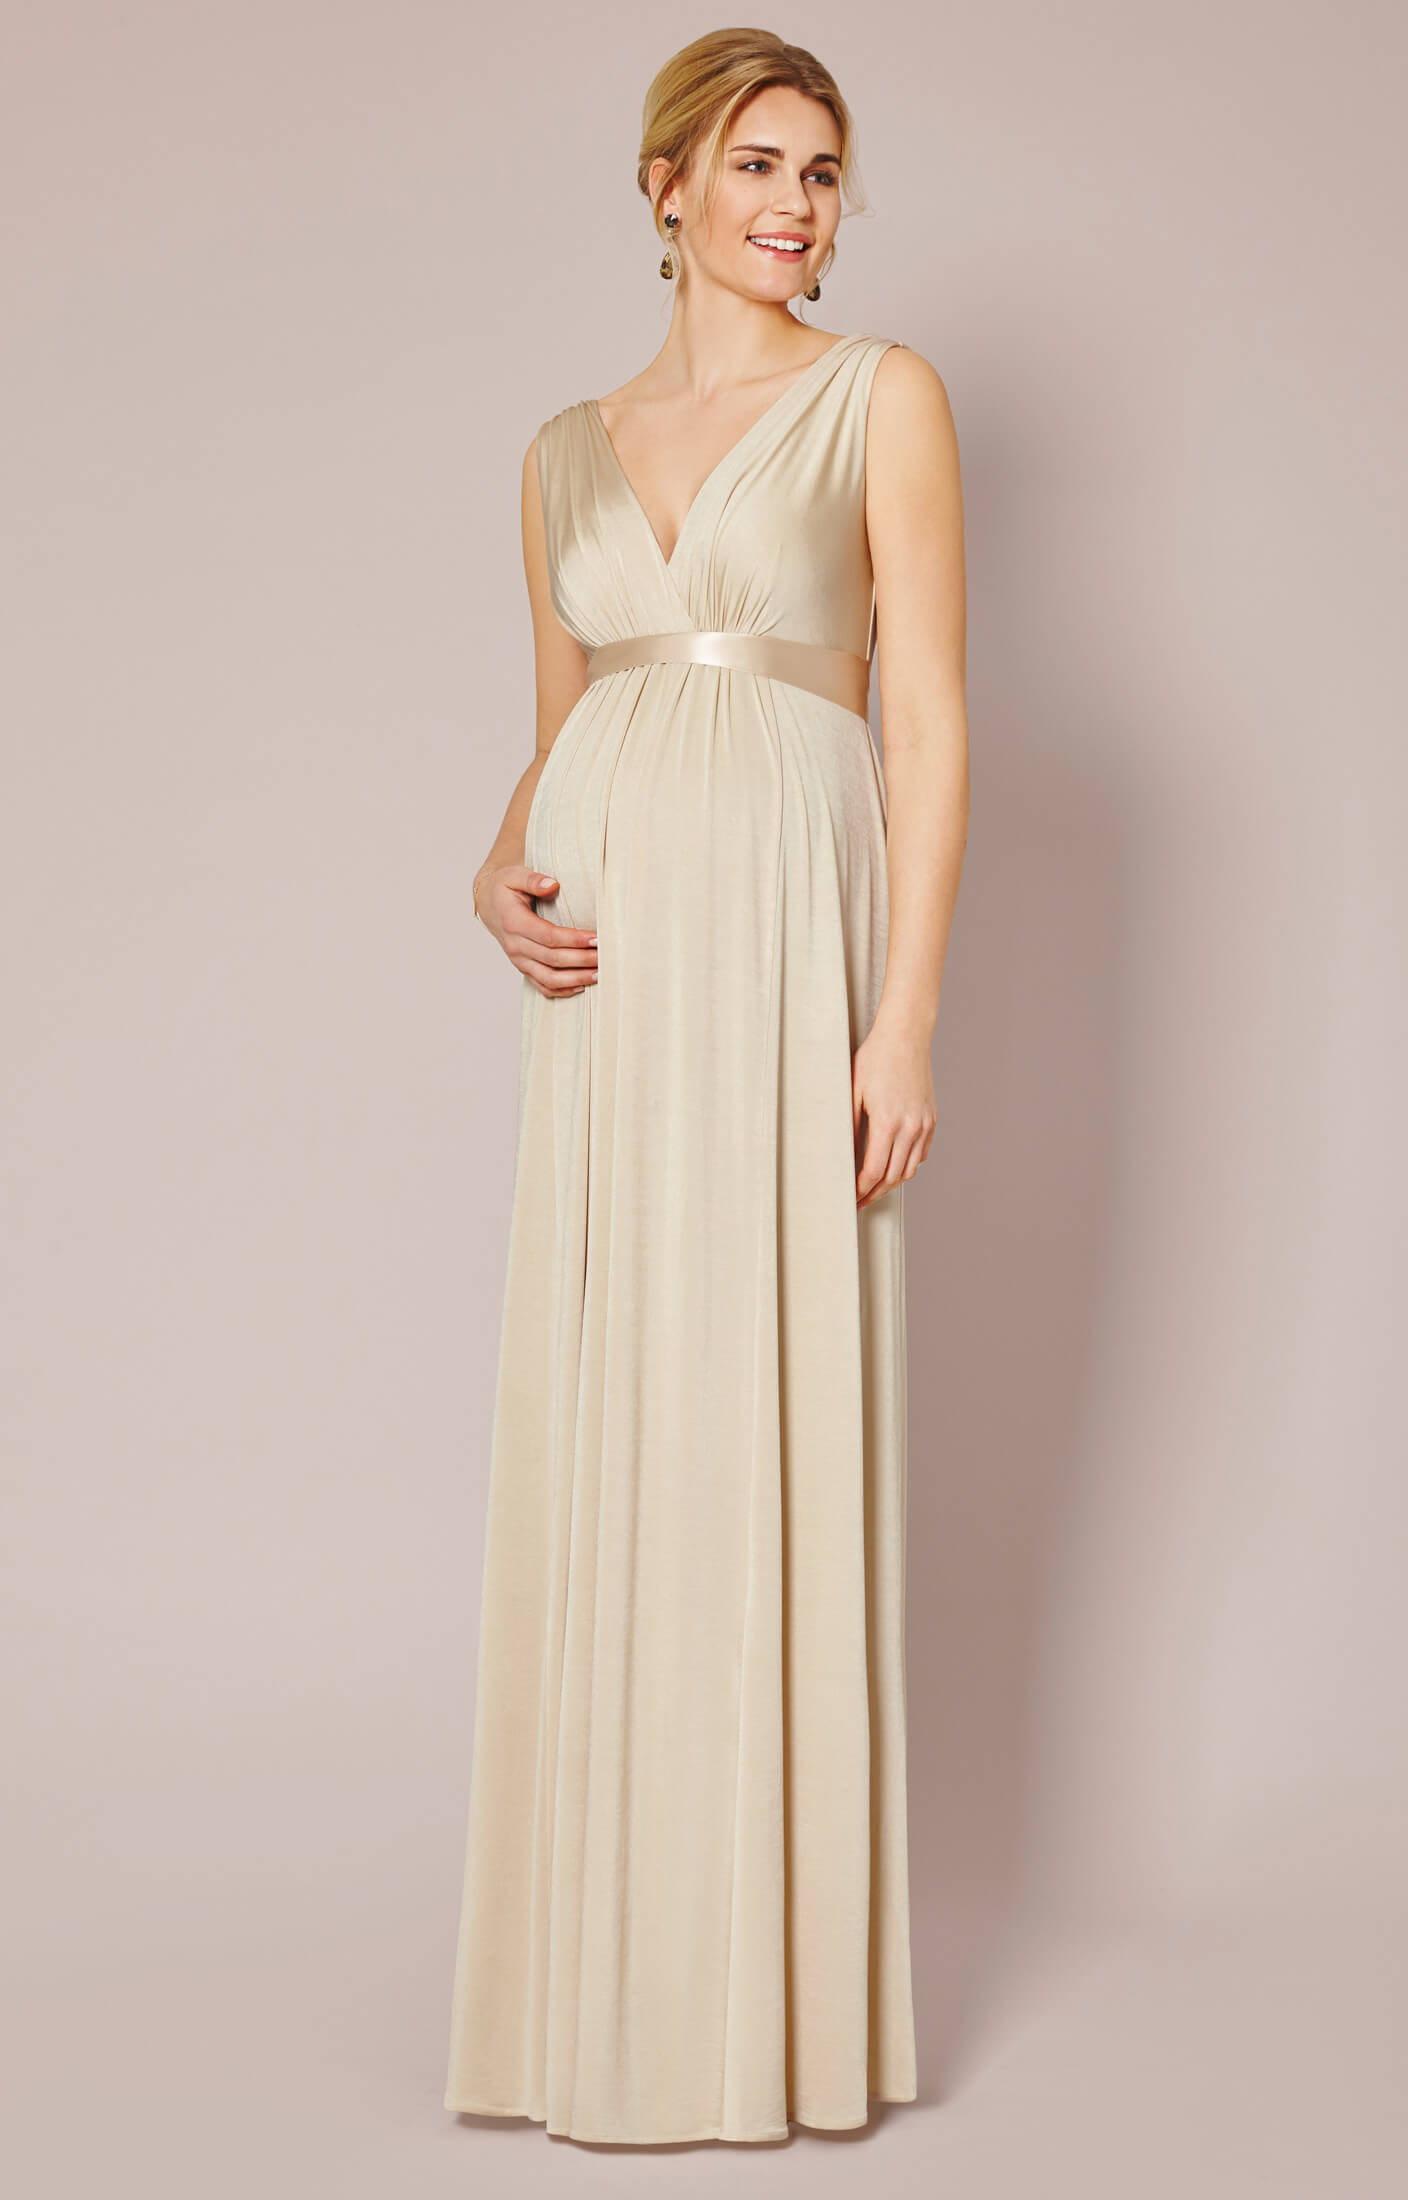 Maxi Maternity Dresses For Weddings | Cocktail Dresses 2016